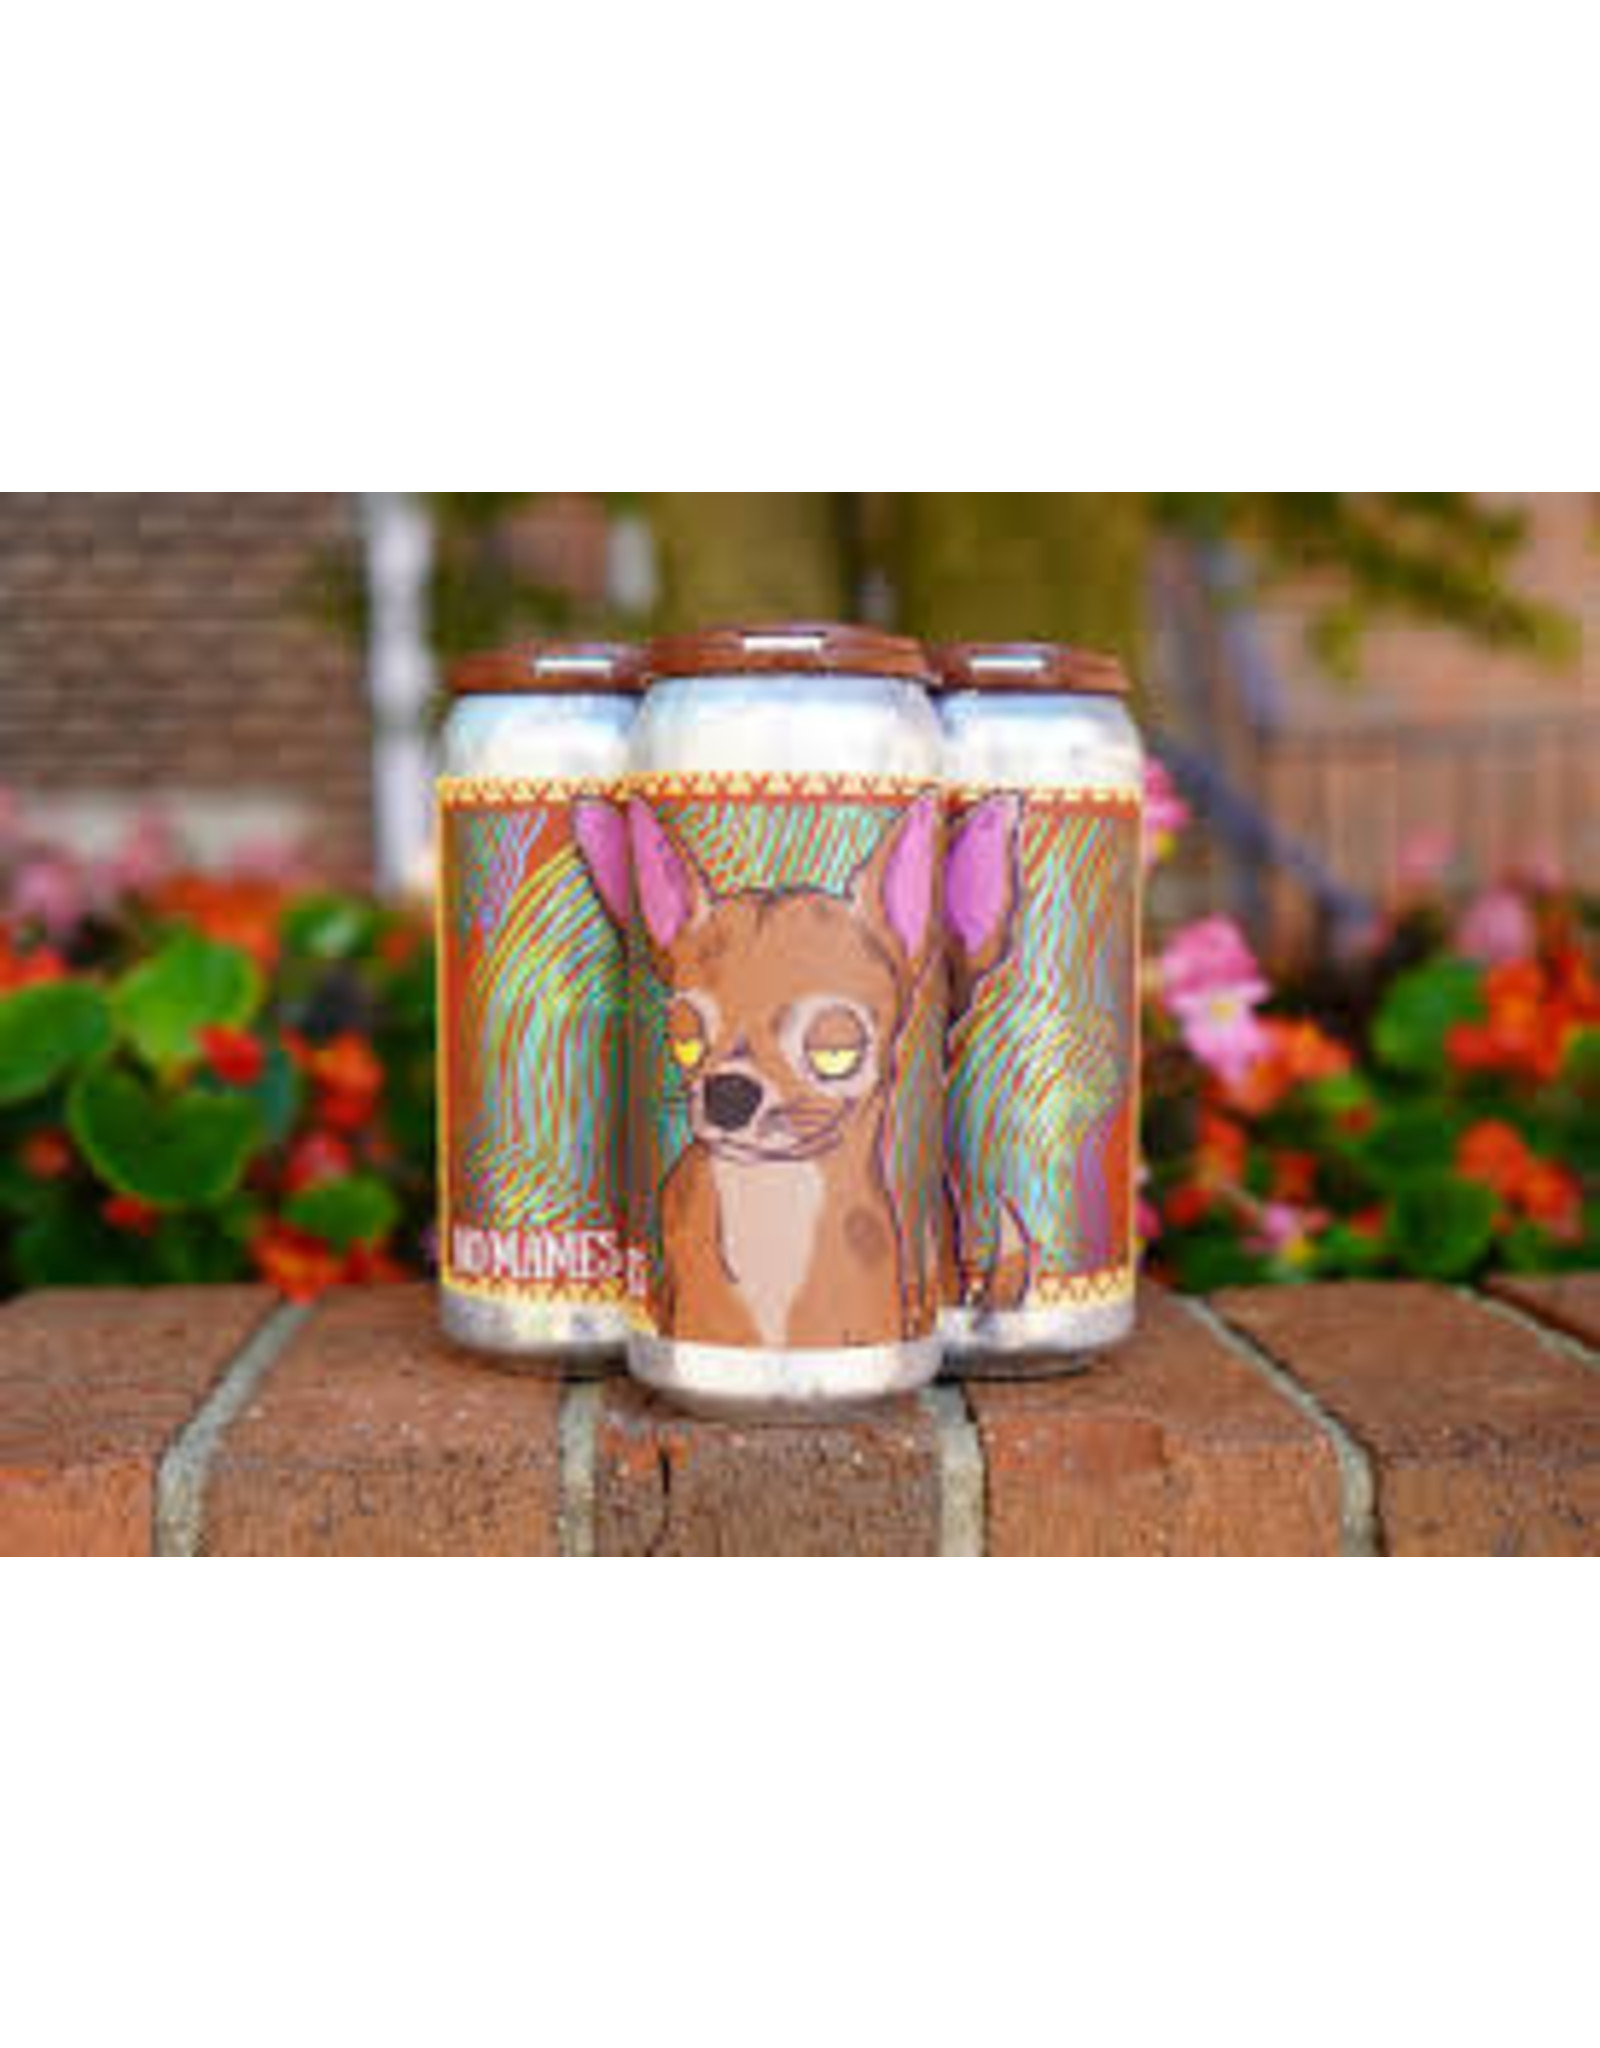 Tripping Animals Tripping Animals No Mames 4pk can